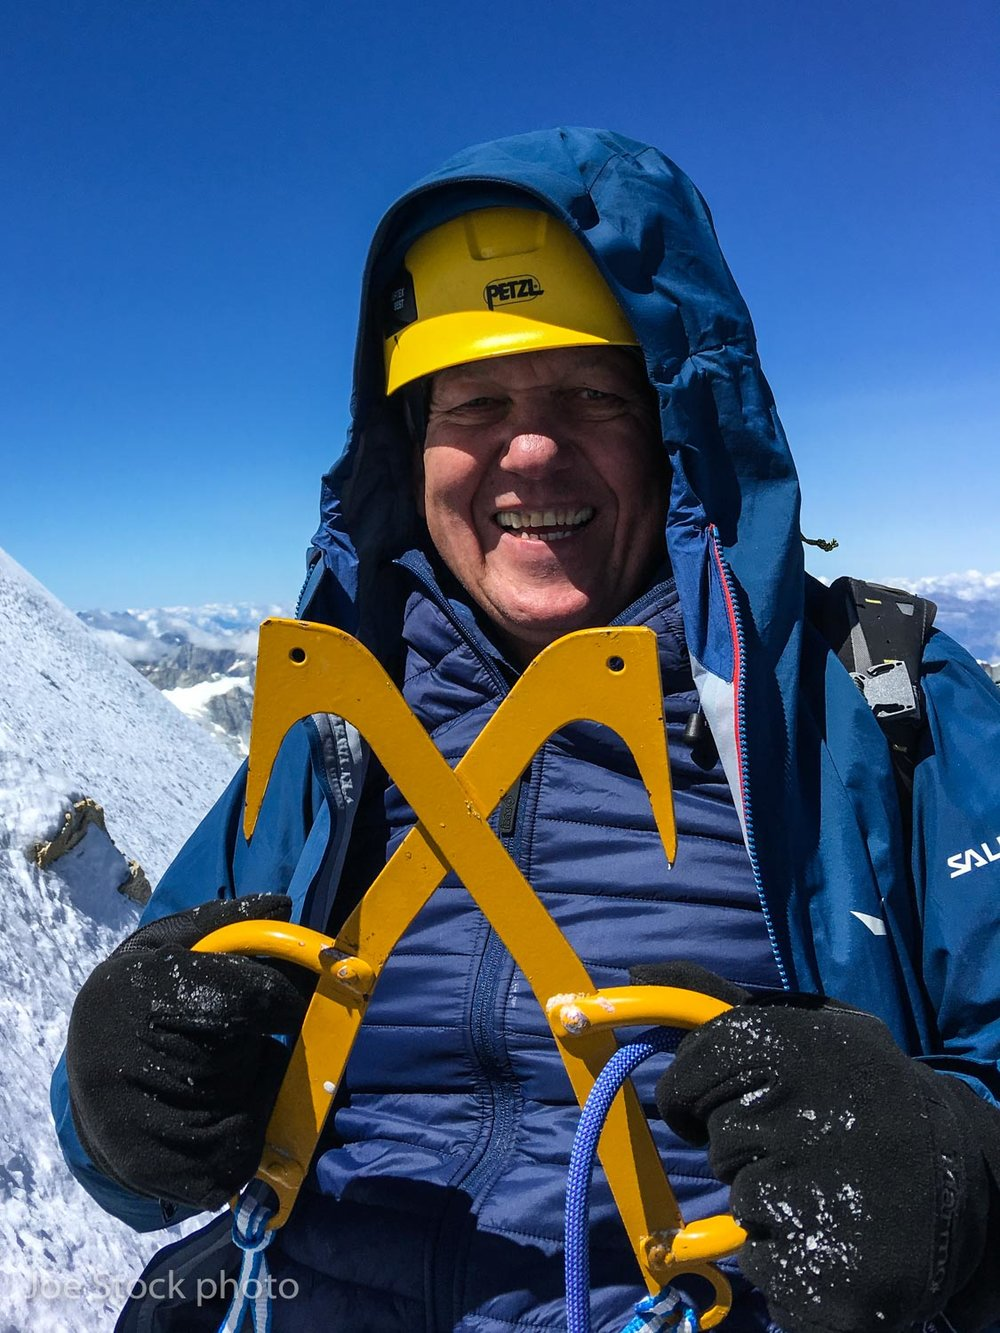 Russian with his ice hooks on the Matterhorn summit icefields.